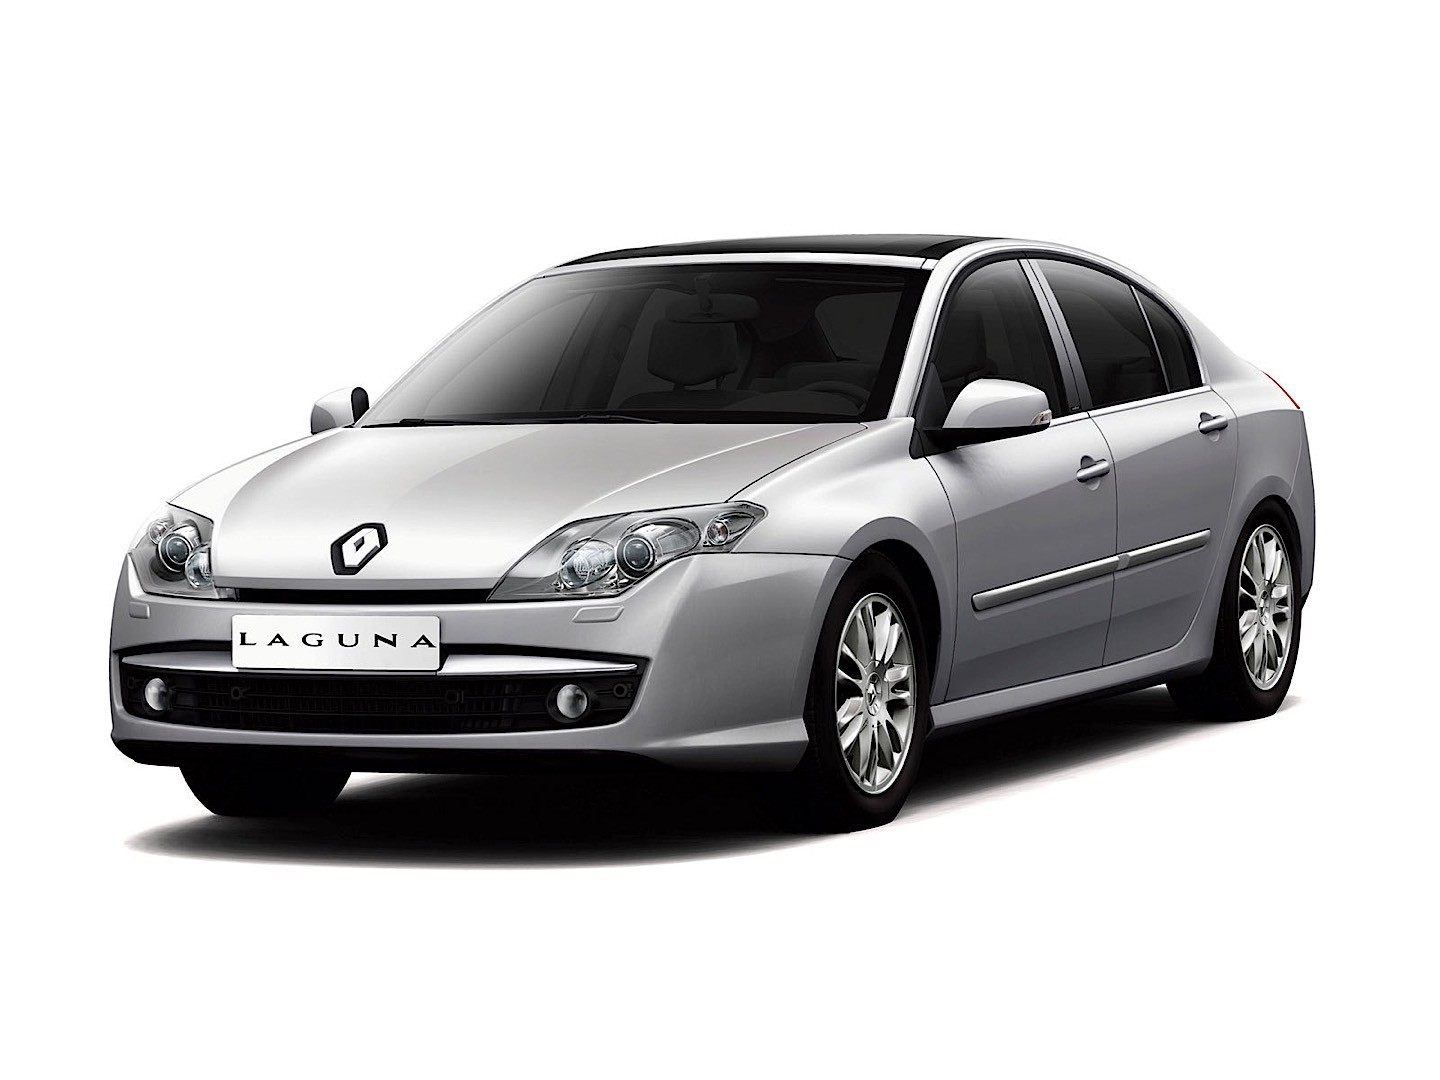 renault laguna specs 2007 2008 2009 2010 autoevolution. Black Bedroom Furniture Sets. Home Design Ideas